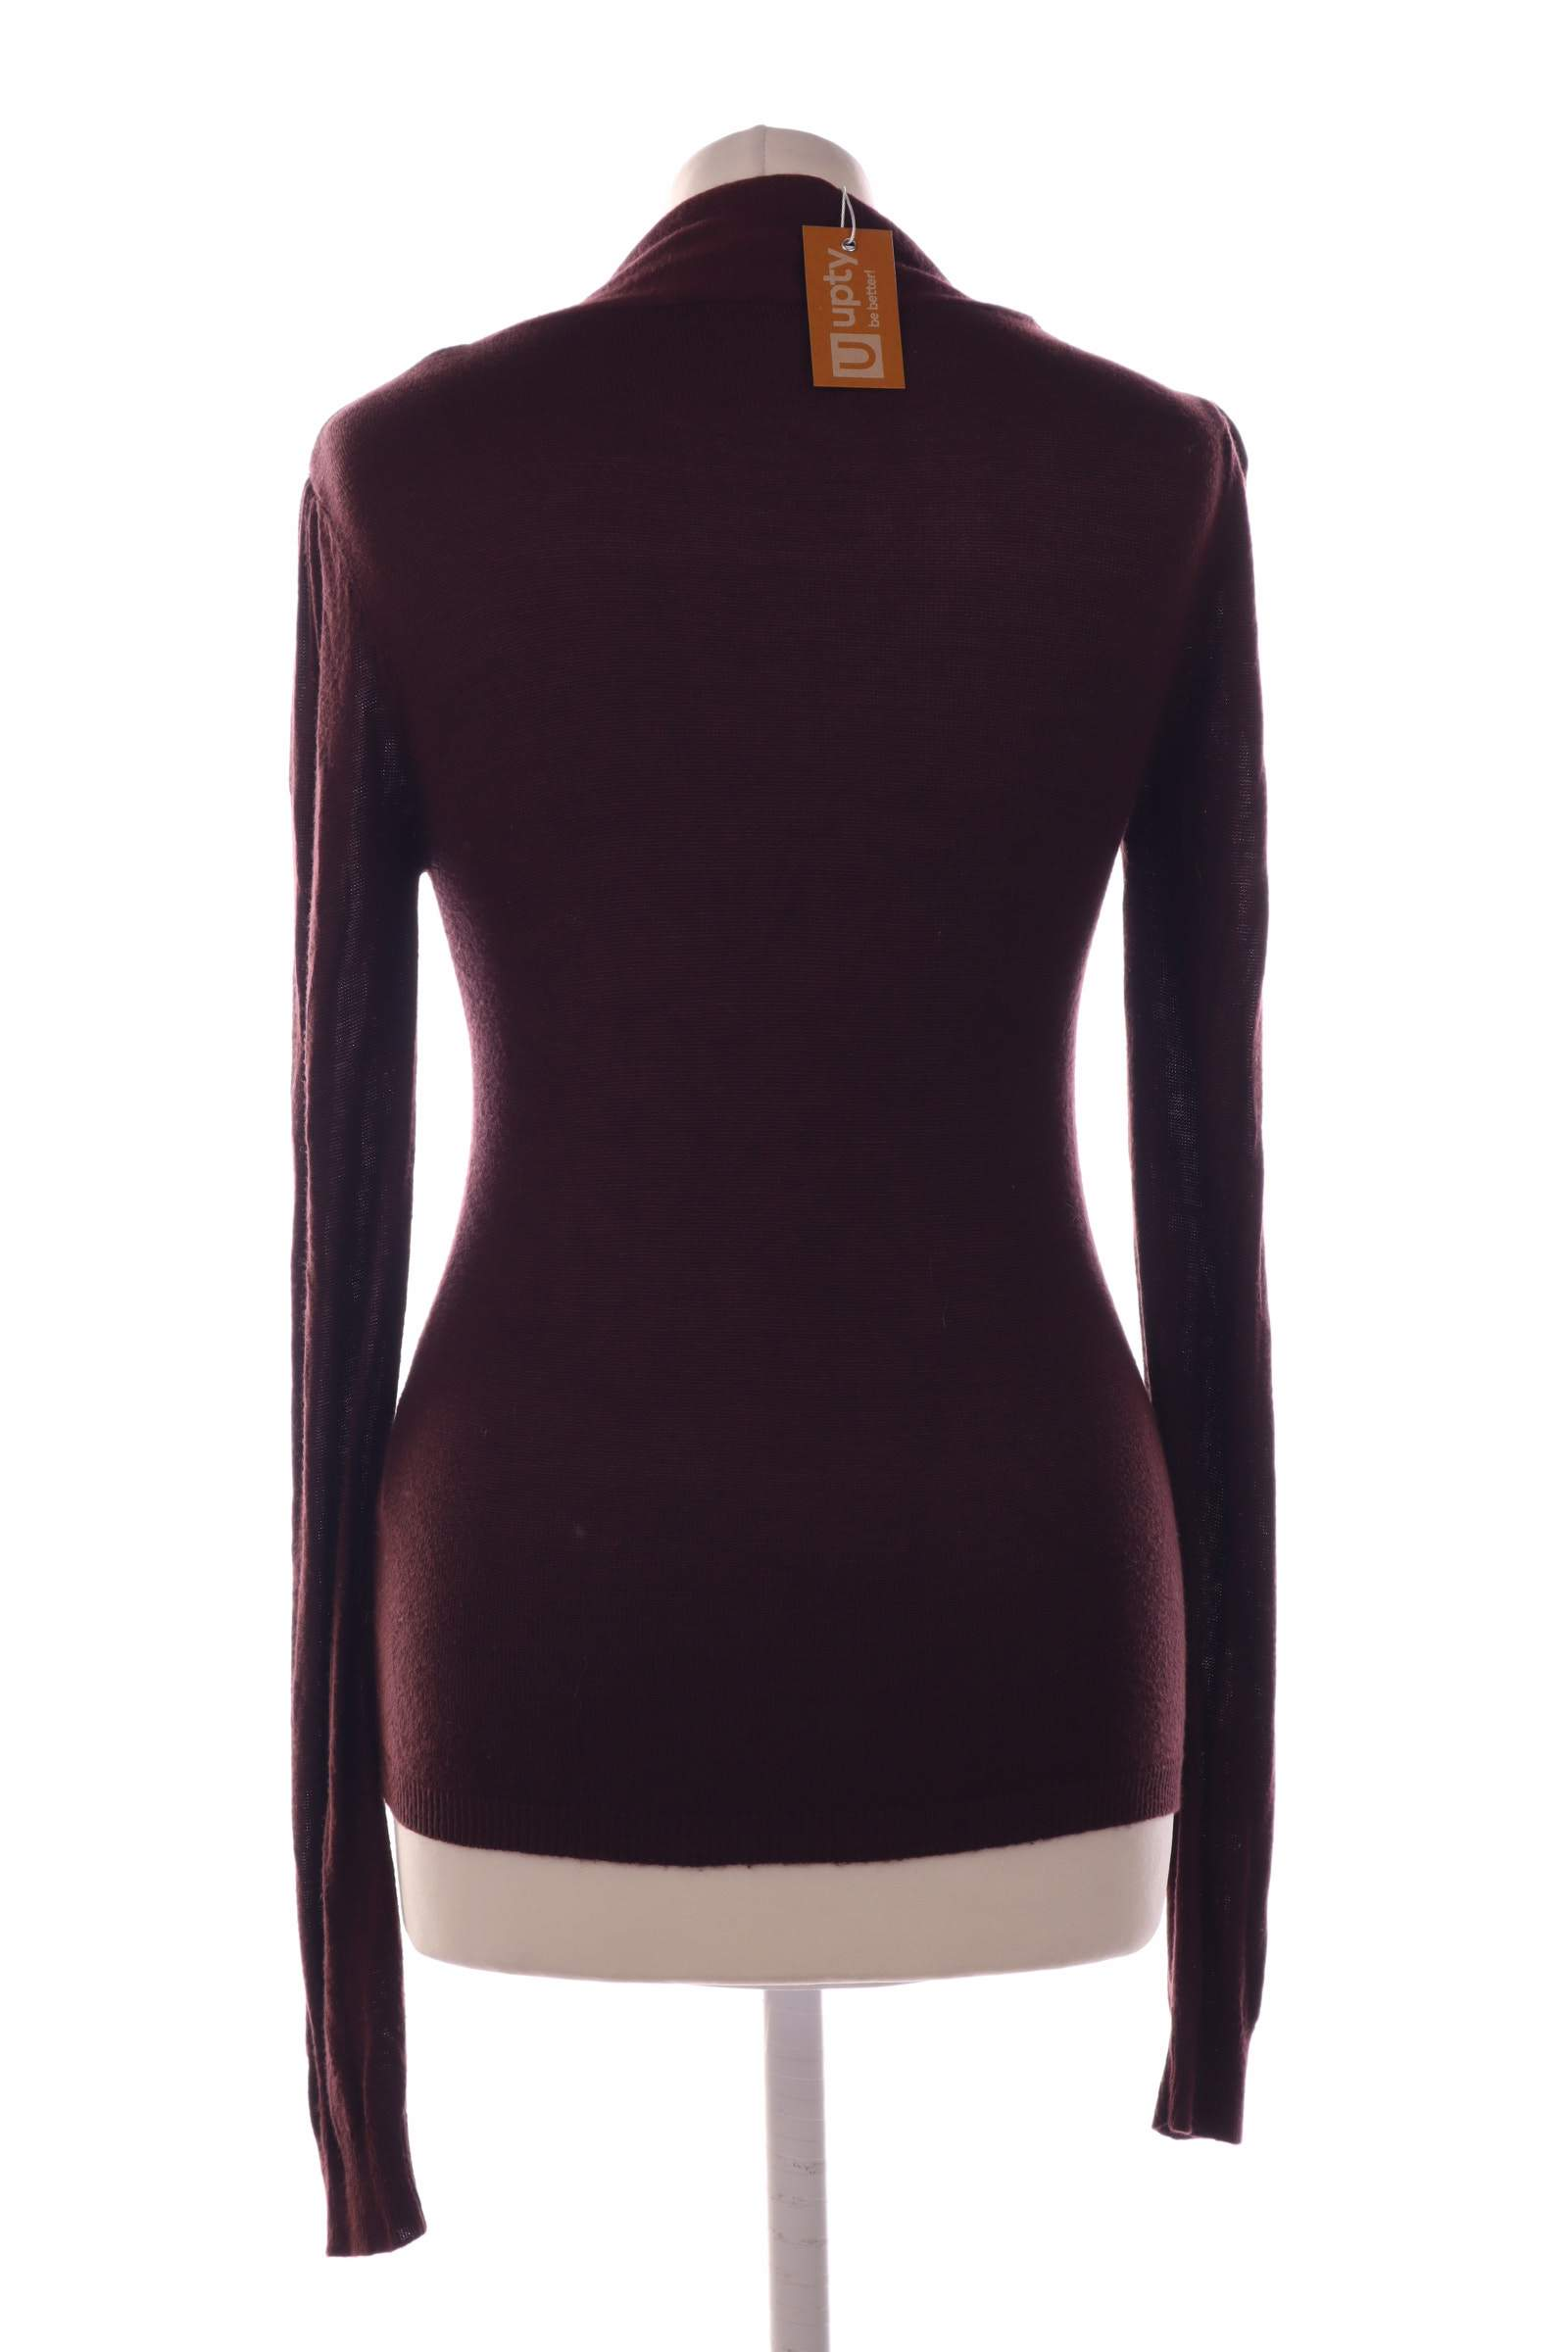 Vero Moda Brown Sweater